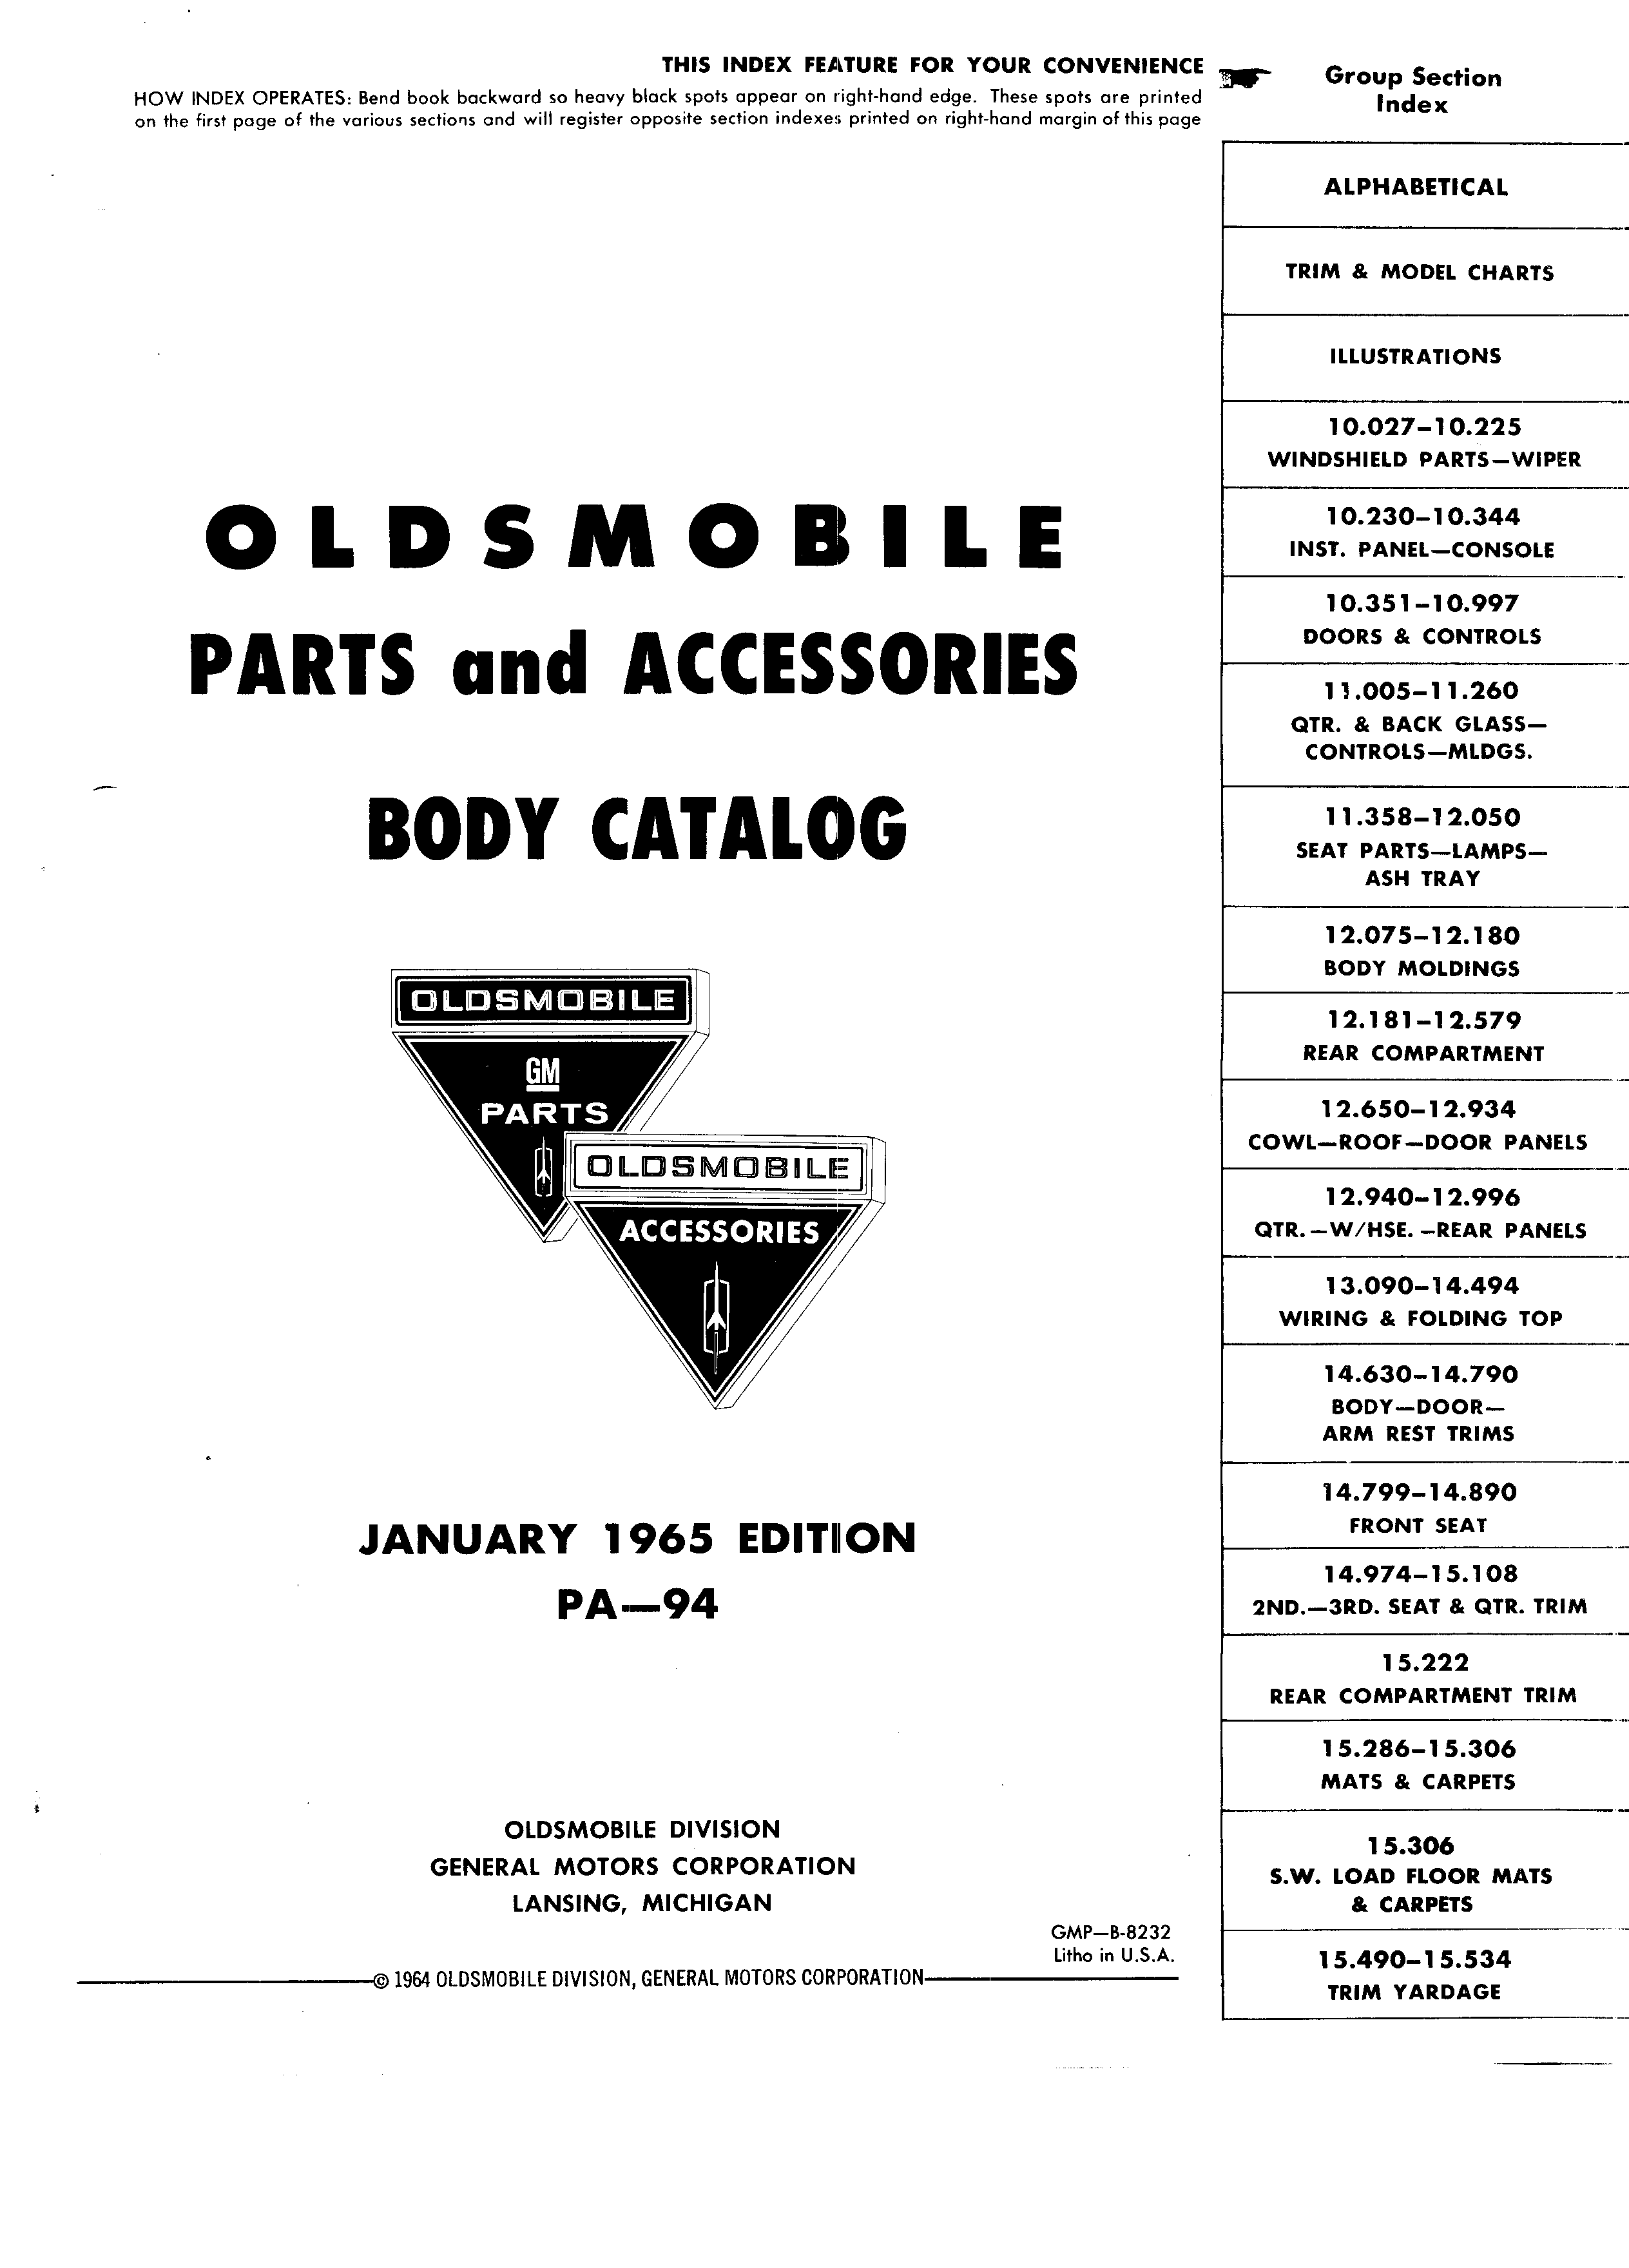 Parts and Accessories Catalog PA-94 January 1965